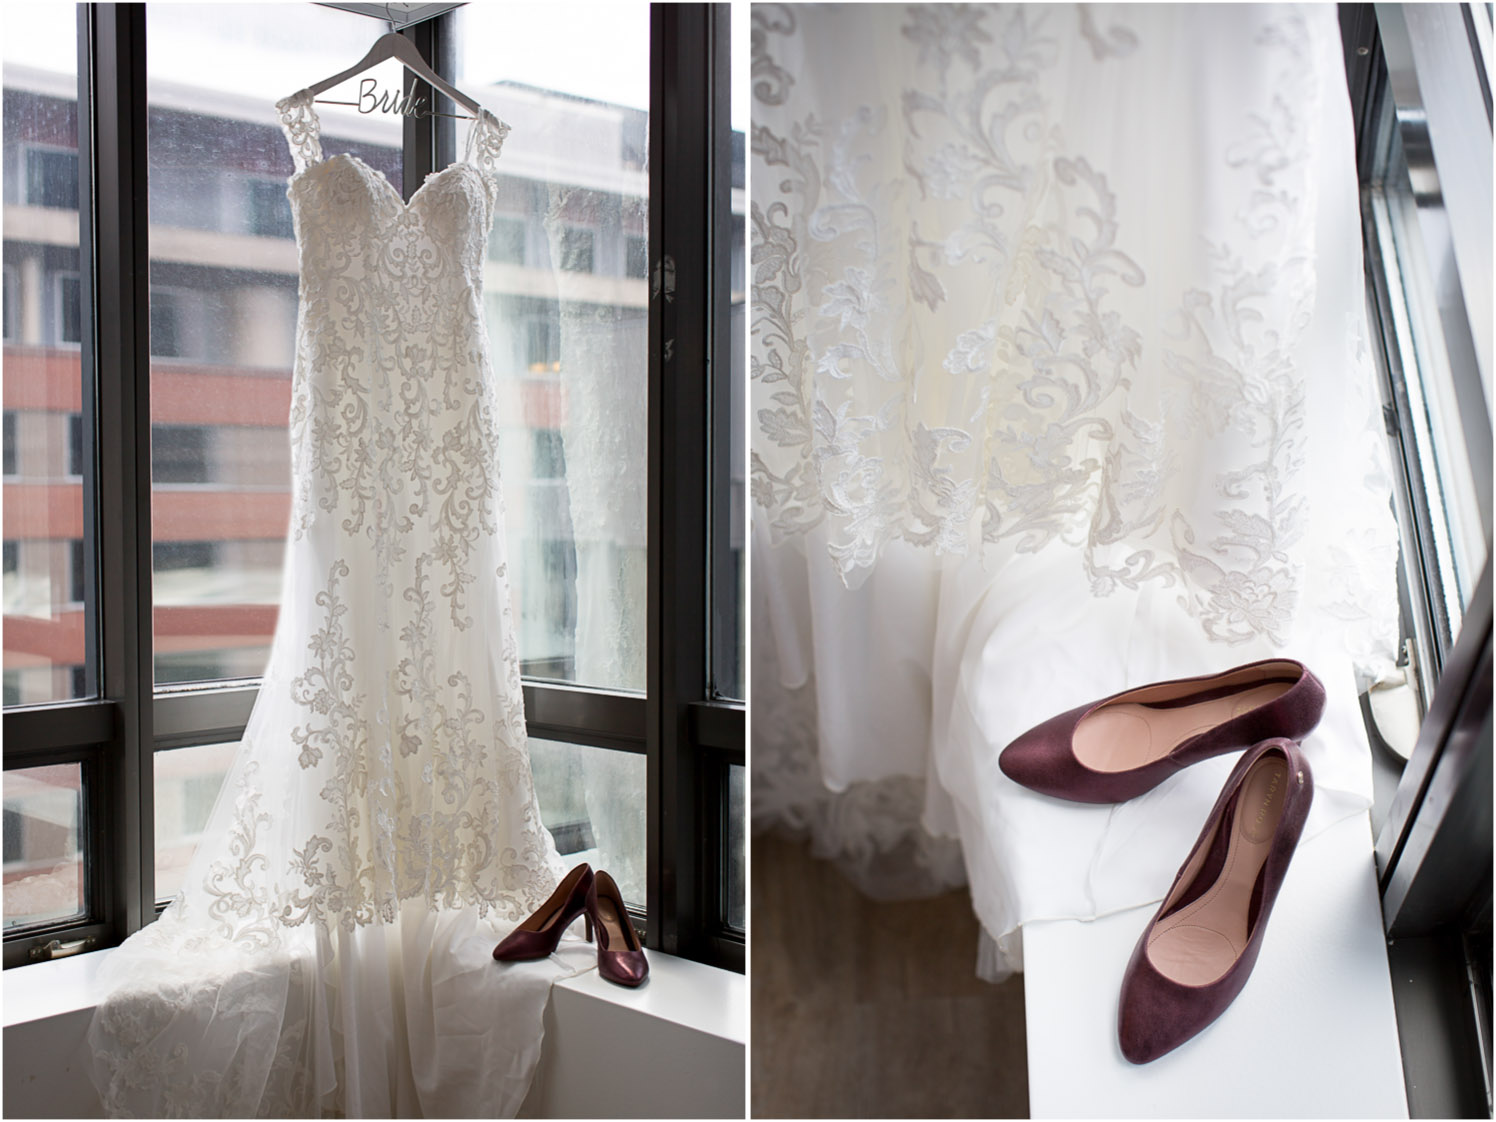 01-windows-on-mn-minneapolis-ids-tower-weddings-wedding-day-details-lace-gown-maroon-heels-mahonenphotography.jpg